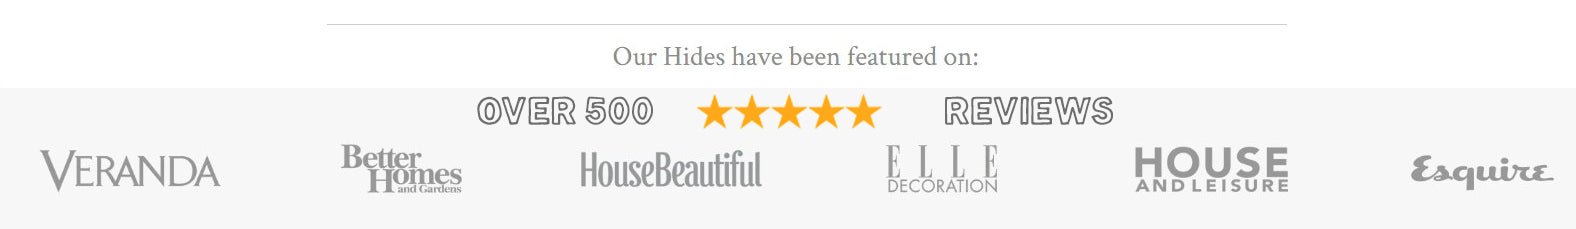 ZEBRA SKIN RUG - OVER 500 5 STAR RATING REVIEWS ON OUTSOURCESOL